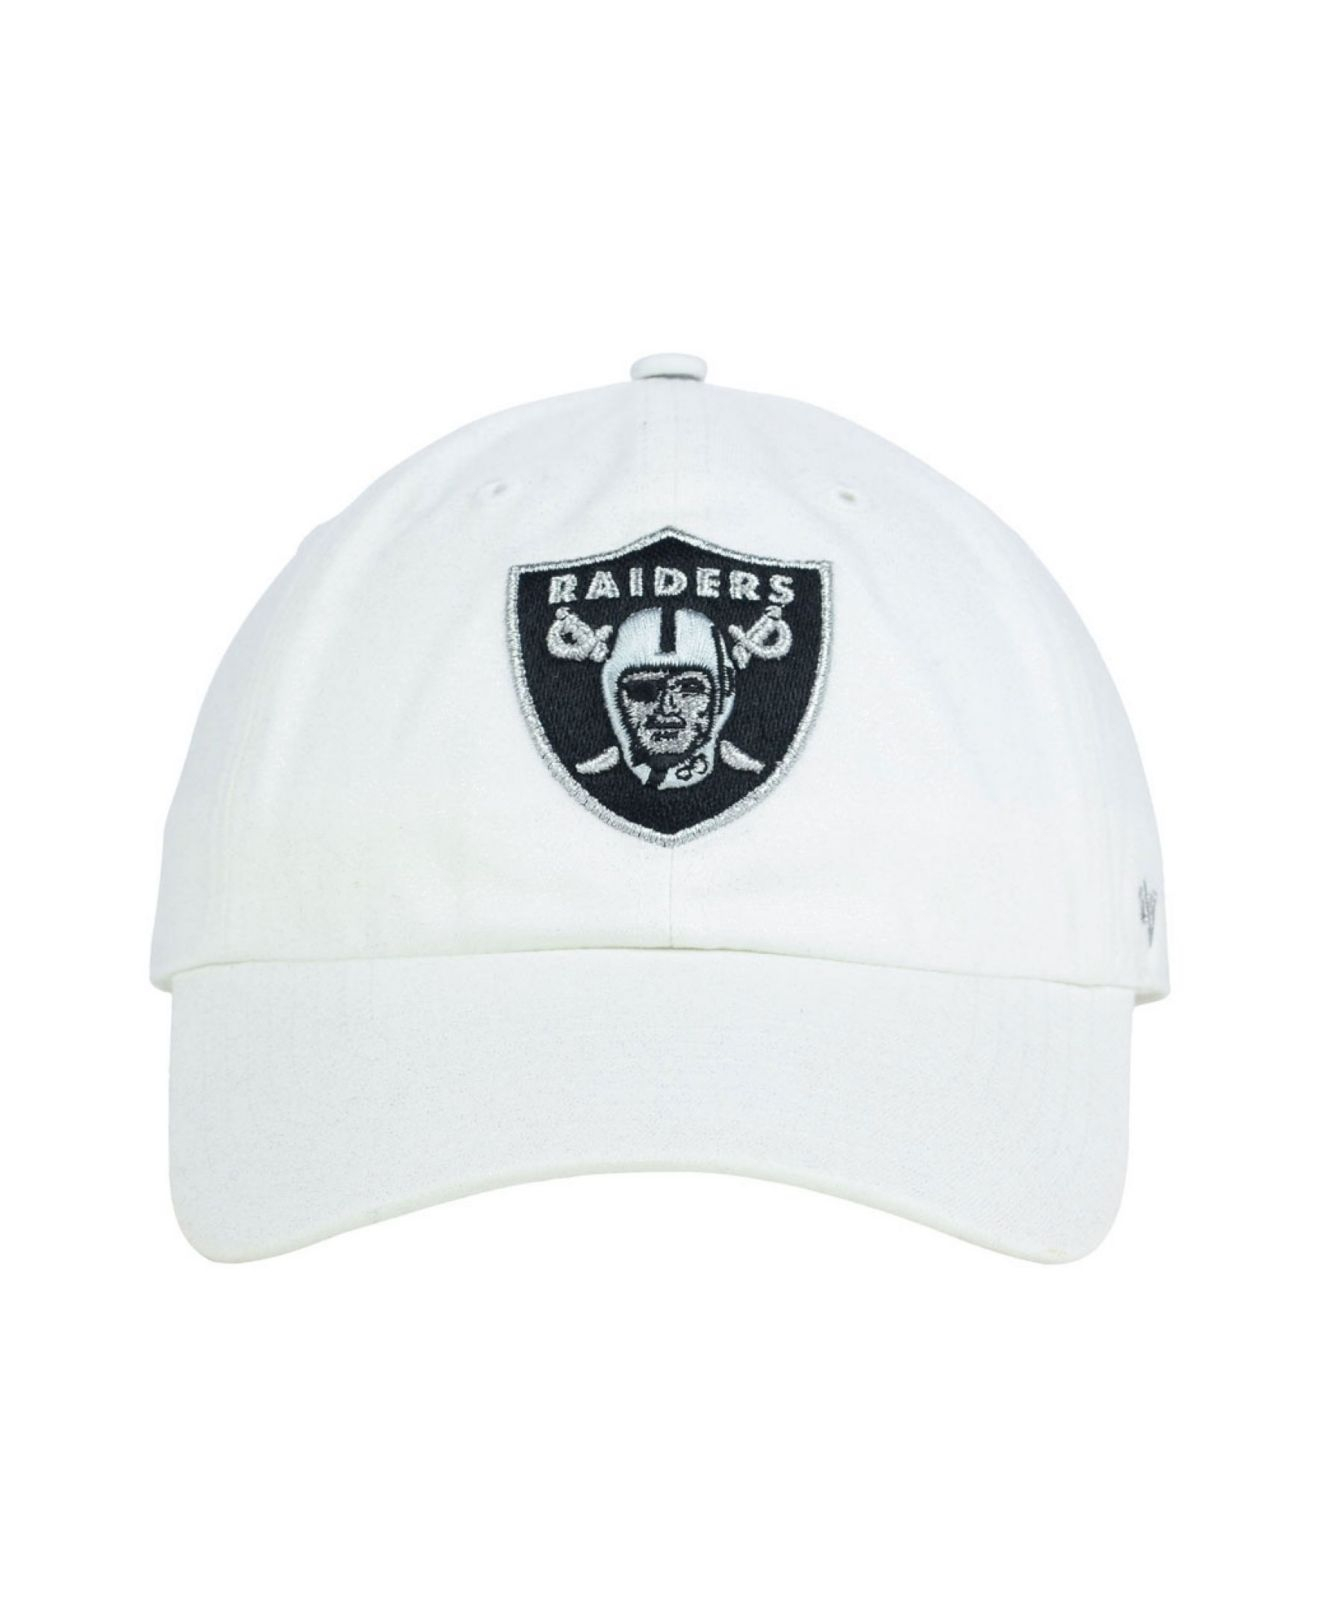 Lyst - 47 Brand Women s Oakland Raiders Luster Clean Up Cap in White 2e1c905267